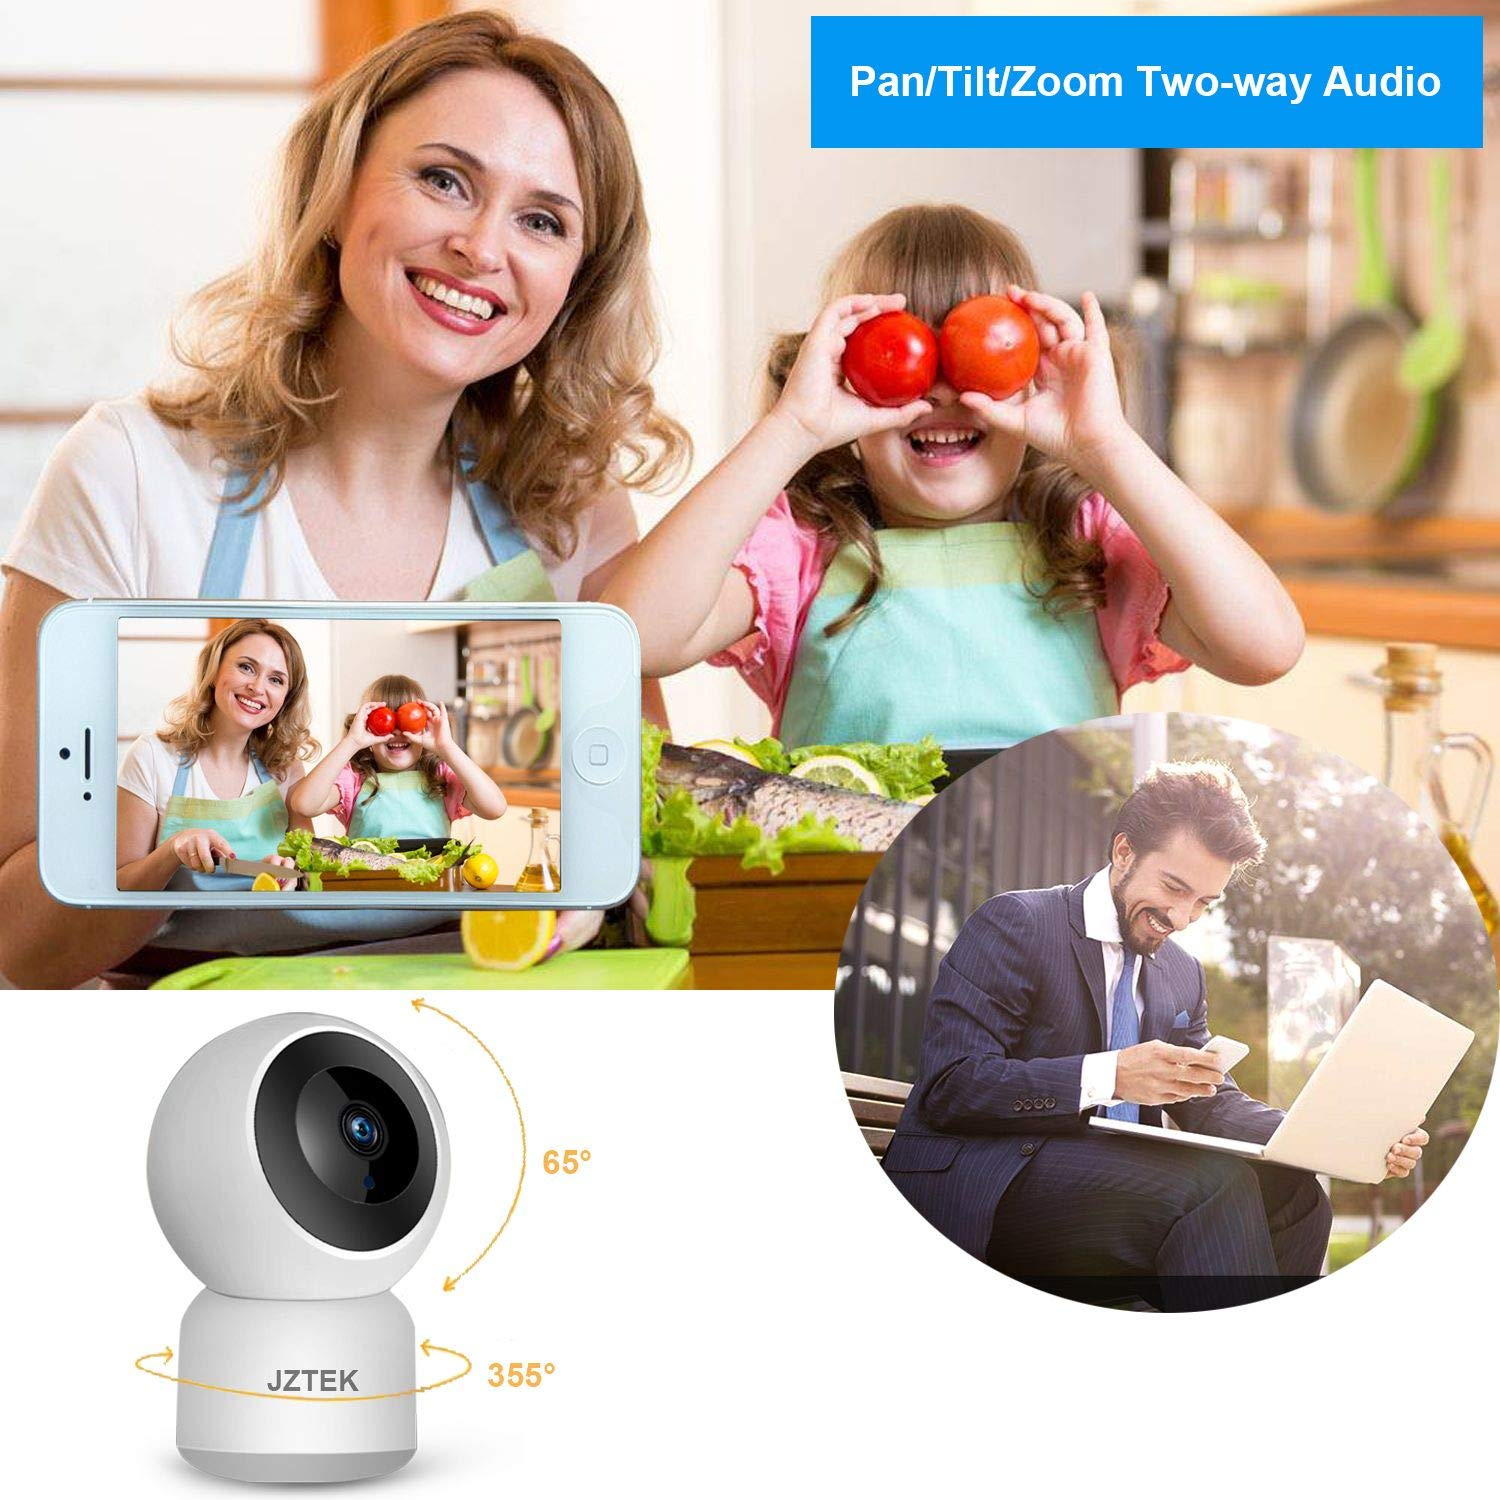 WiFi Dog IP Camera 1080P, JZTEK Smart Wireless Cam Pan/Tilt/Zoom with Cloud Service 3D Image Touch Navigation Panoramic View Night Vision, Two-Way Audio, Motion Detection for Elder,Baby,Pet by JZTEK (Image #3)